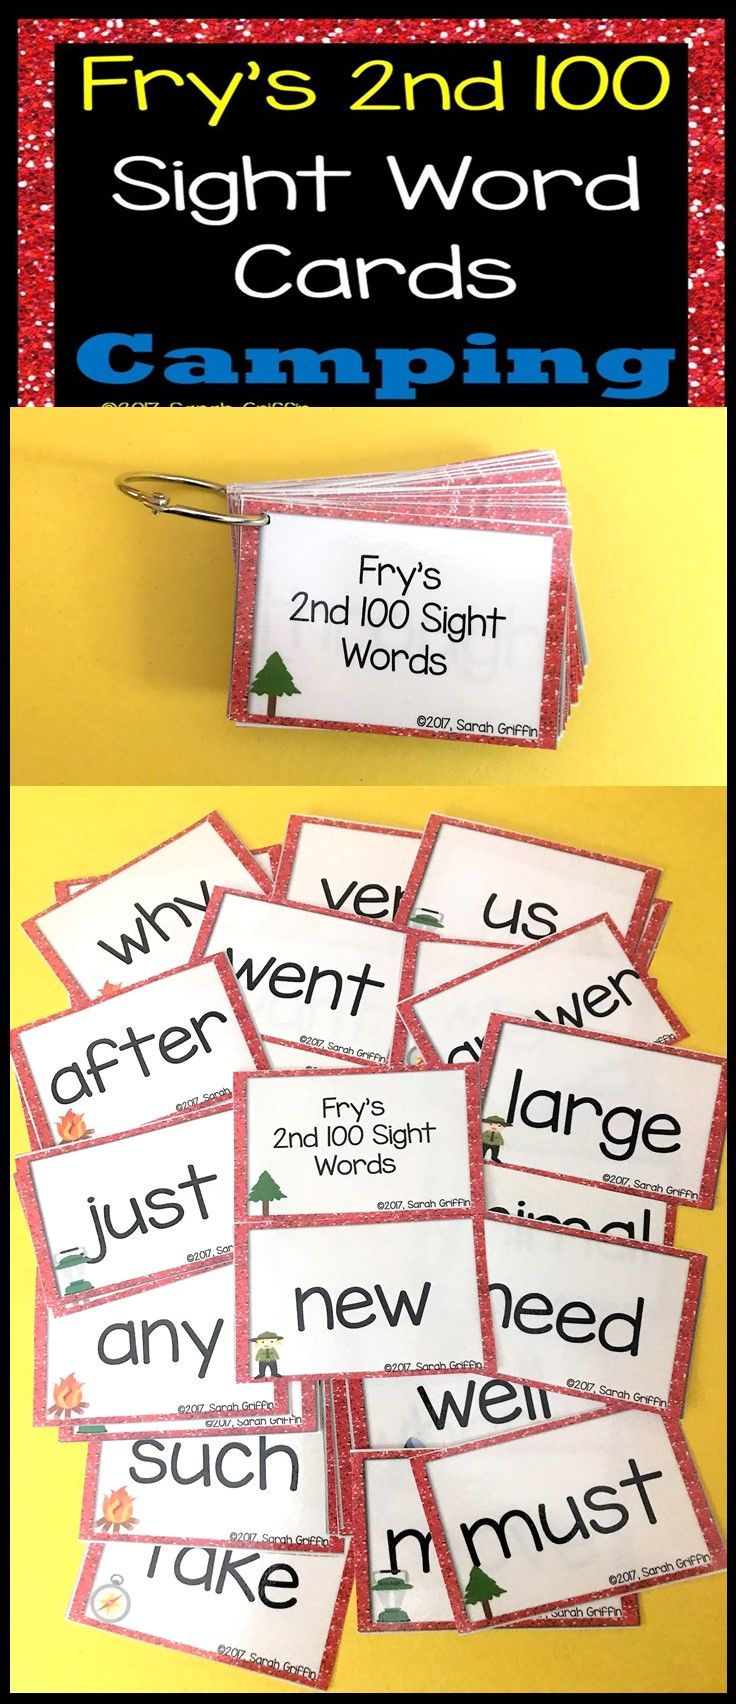 Fry 2nd 100 Sight Words #101-200 - Word Wall Cards - Camping Theme ...